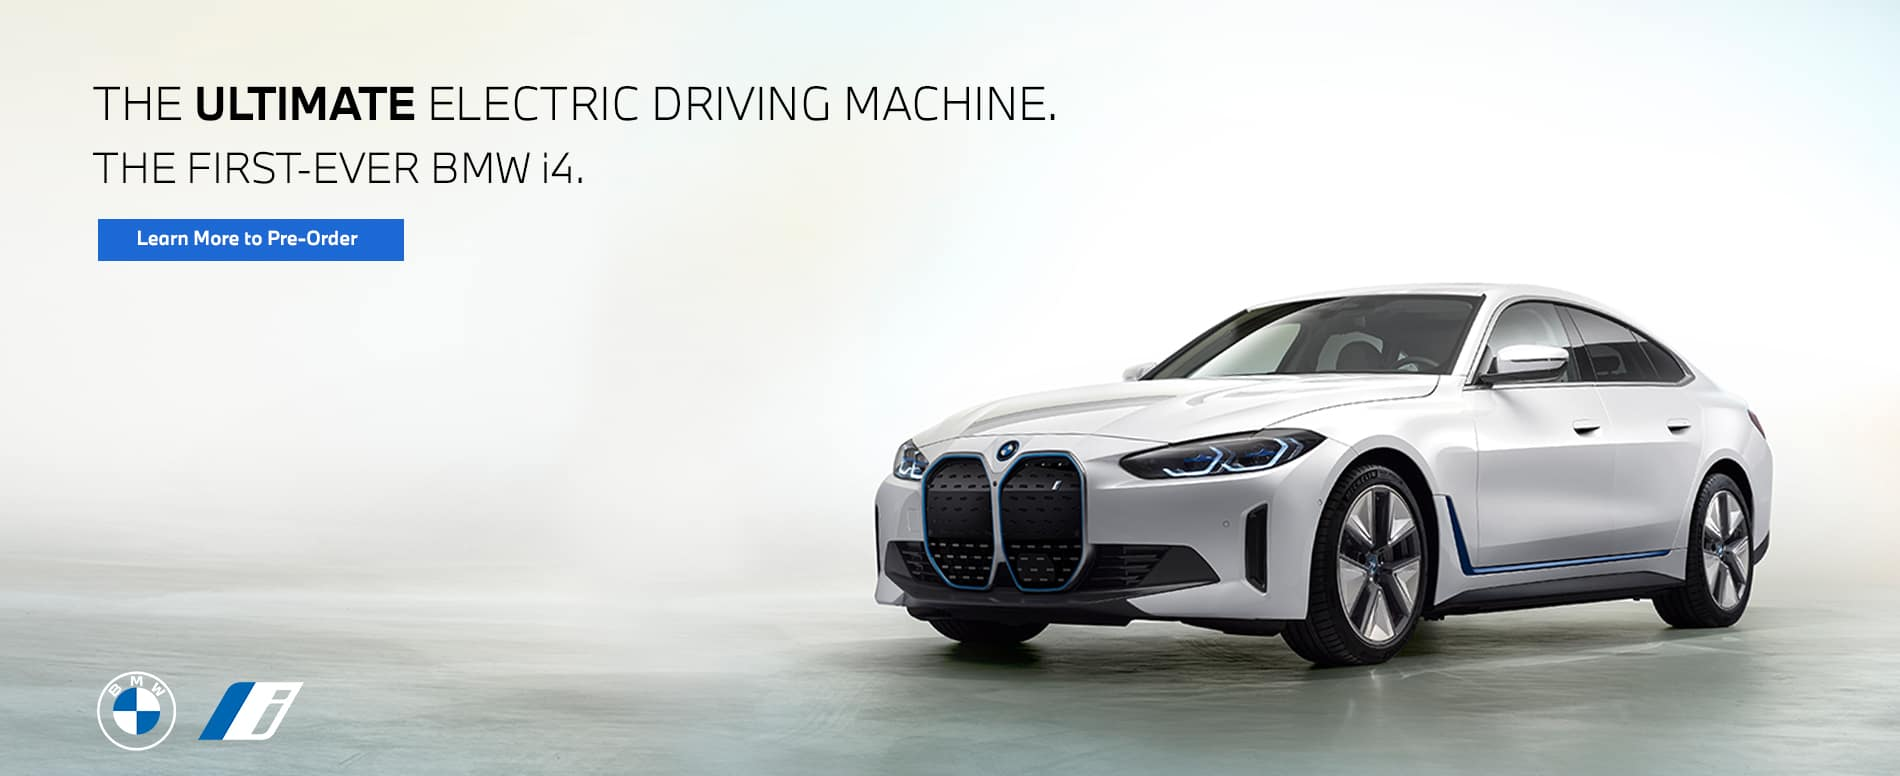 THE-ULTIMATE-ELECTRIC-DRIVING-MACHINE-THE-FIRST-EVER-i4-CLICK-TO-PRE-ORDER